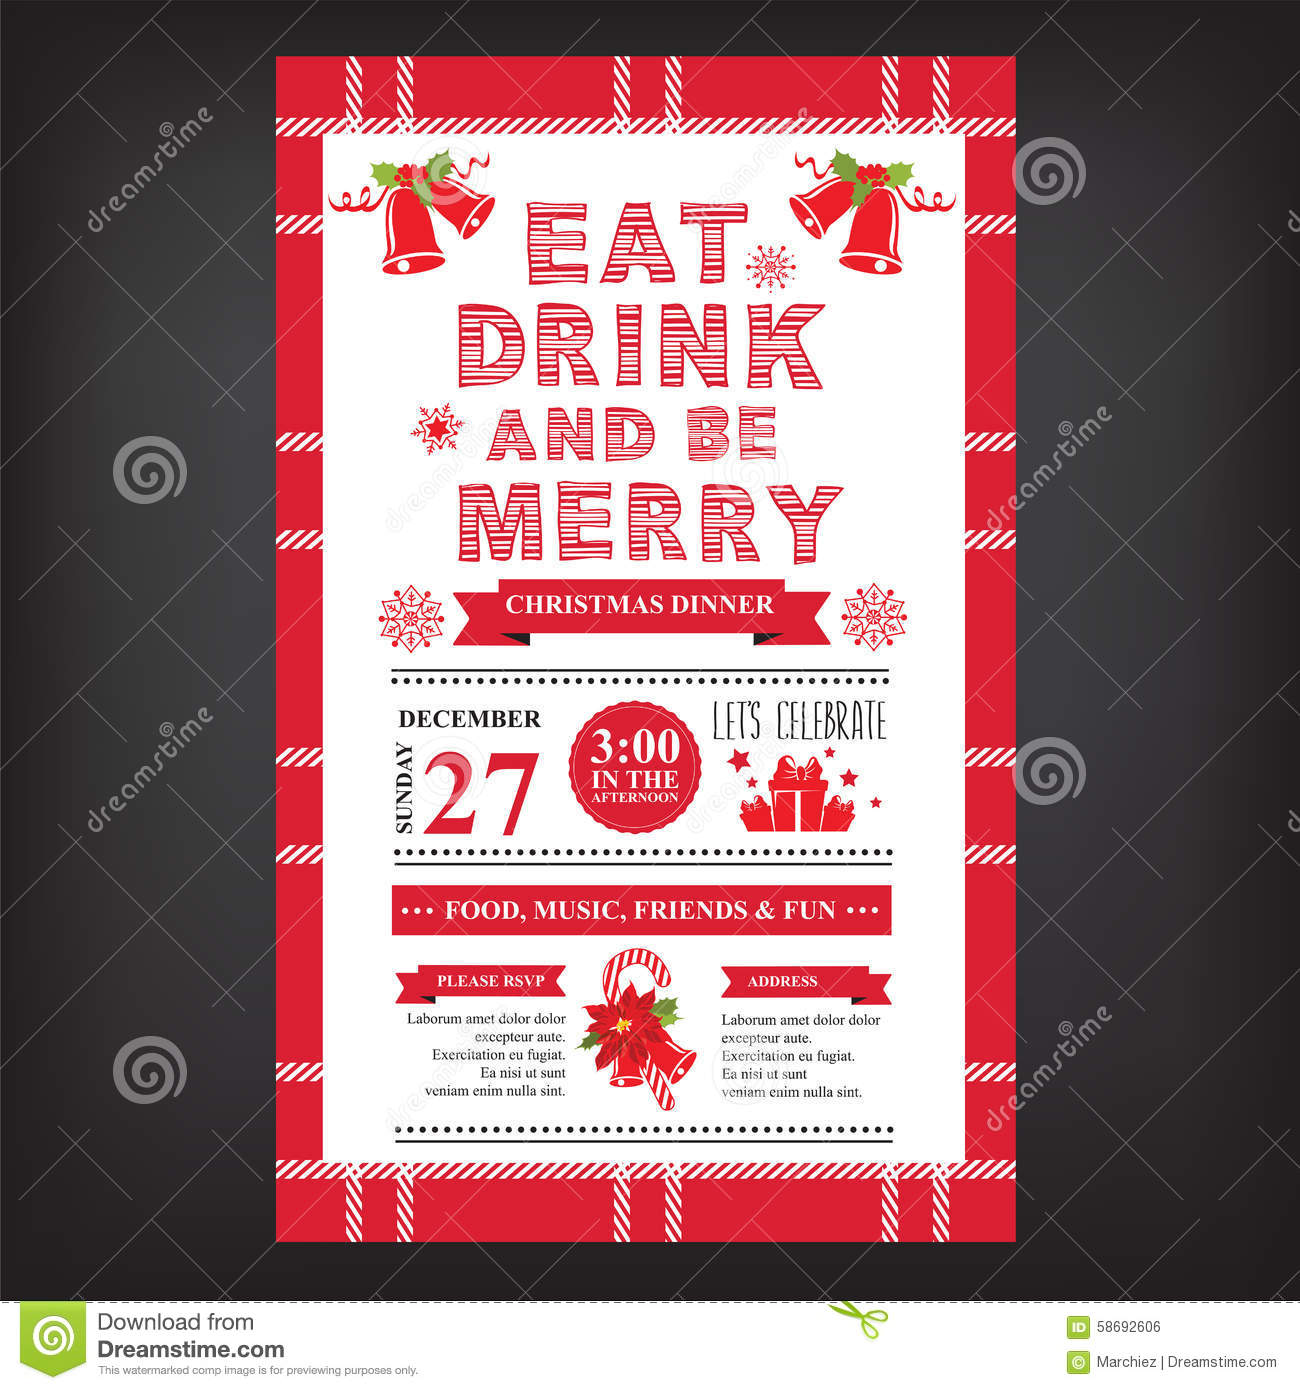 Awesome Dinner Party Menu Templates Free Download Ideas Best